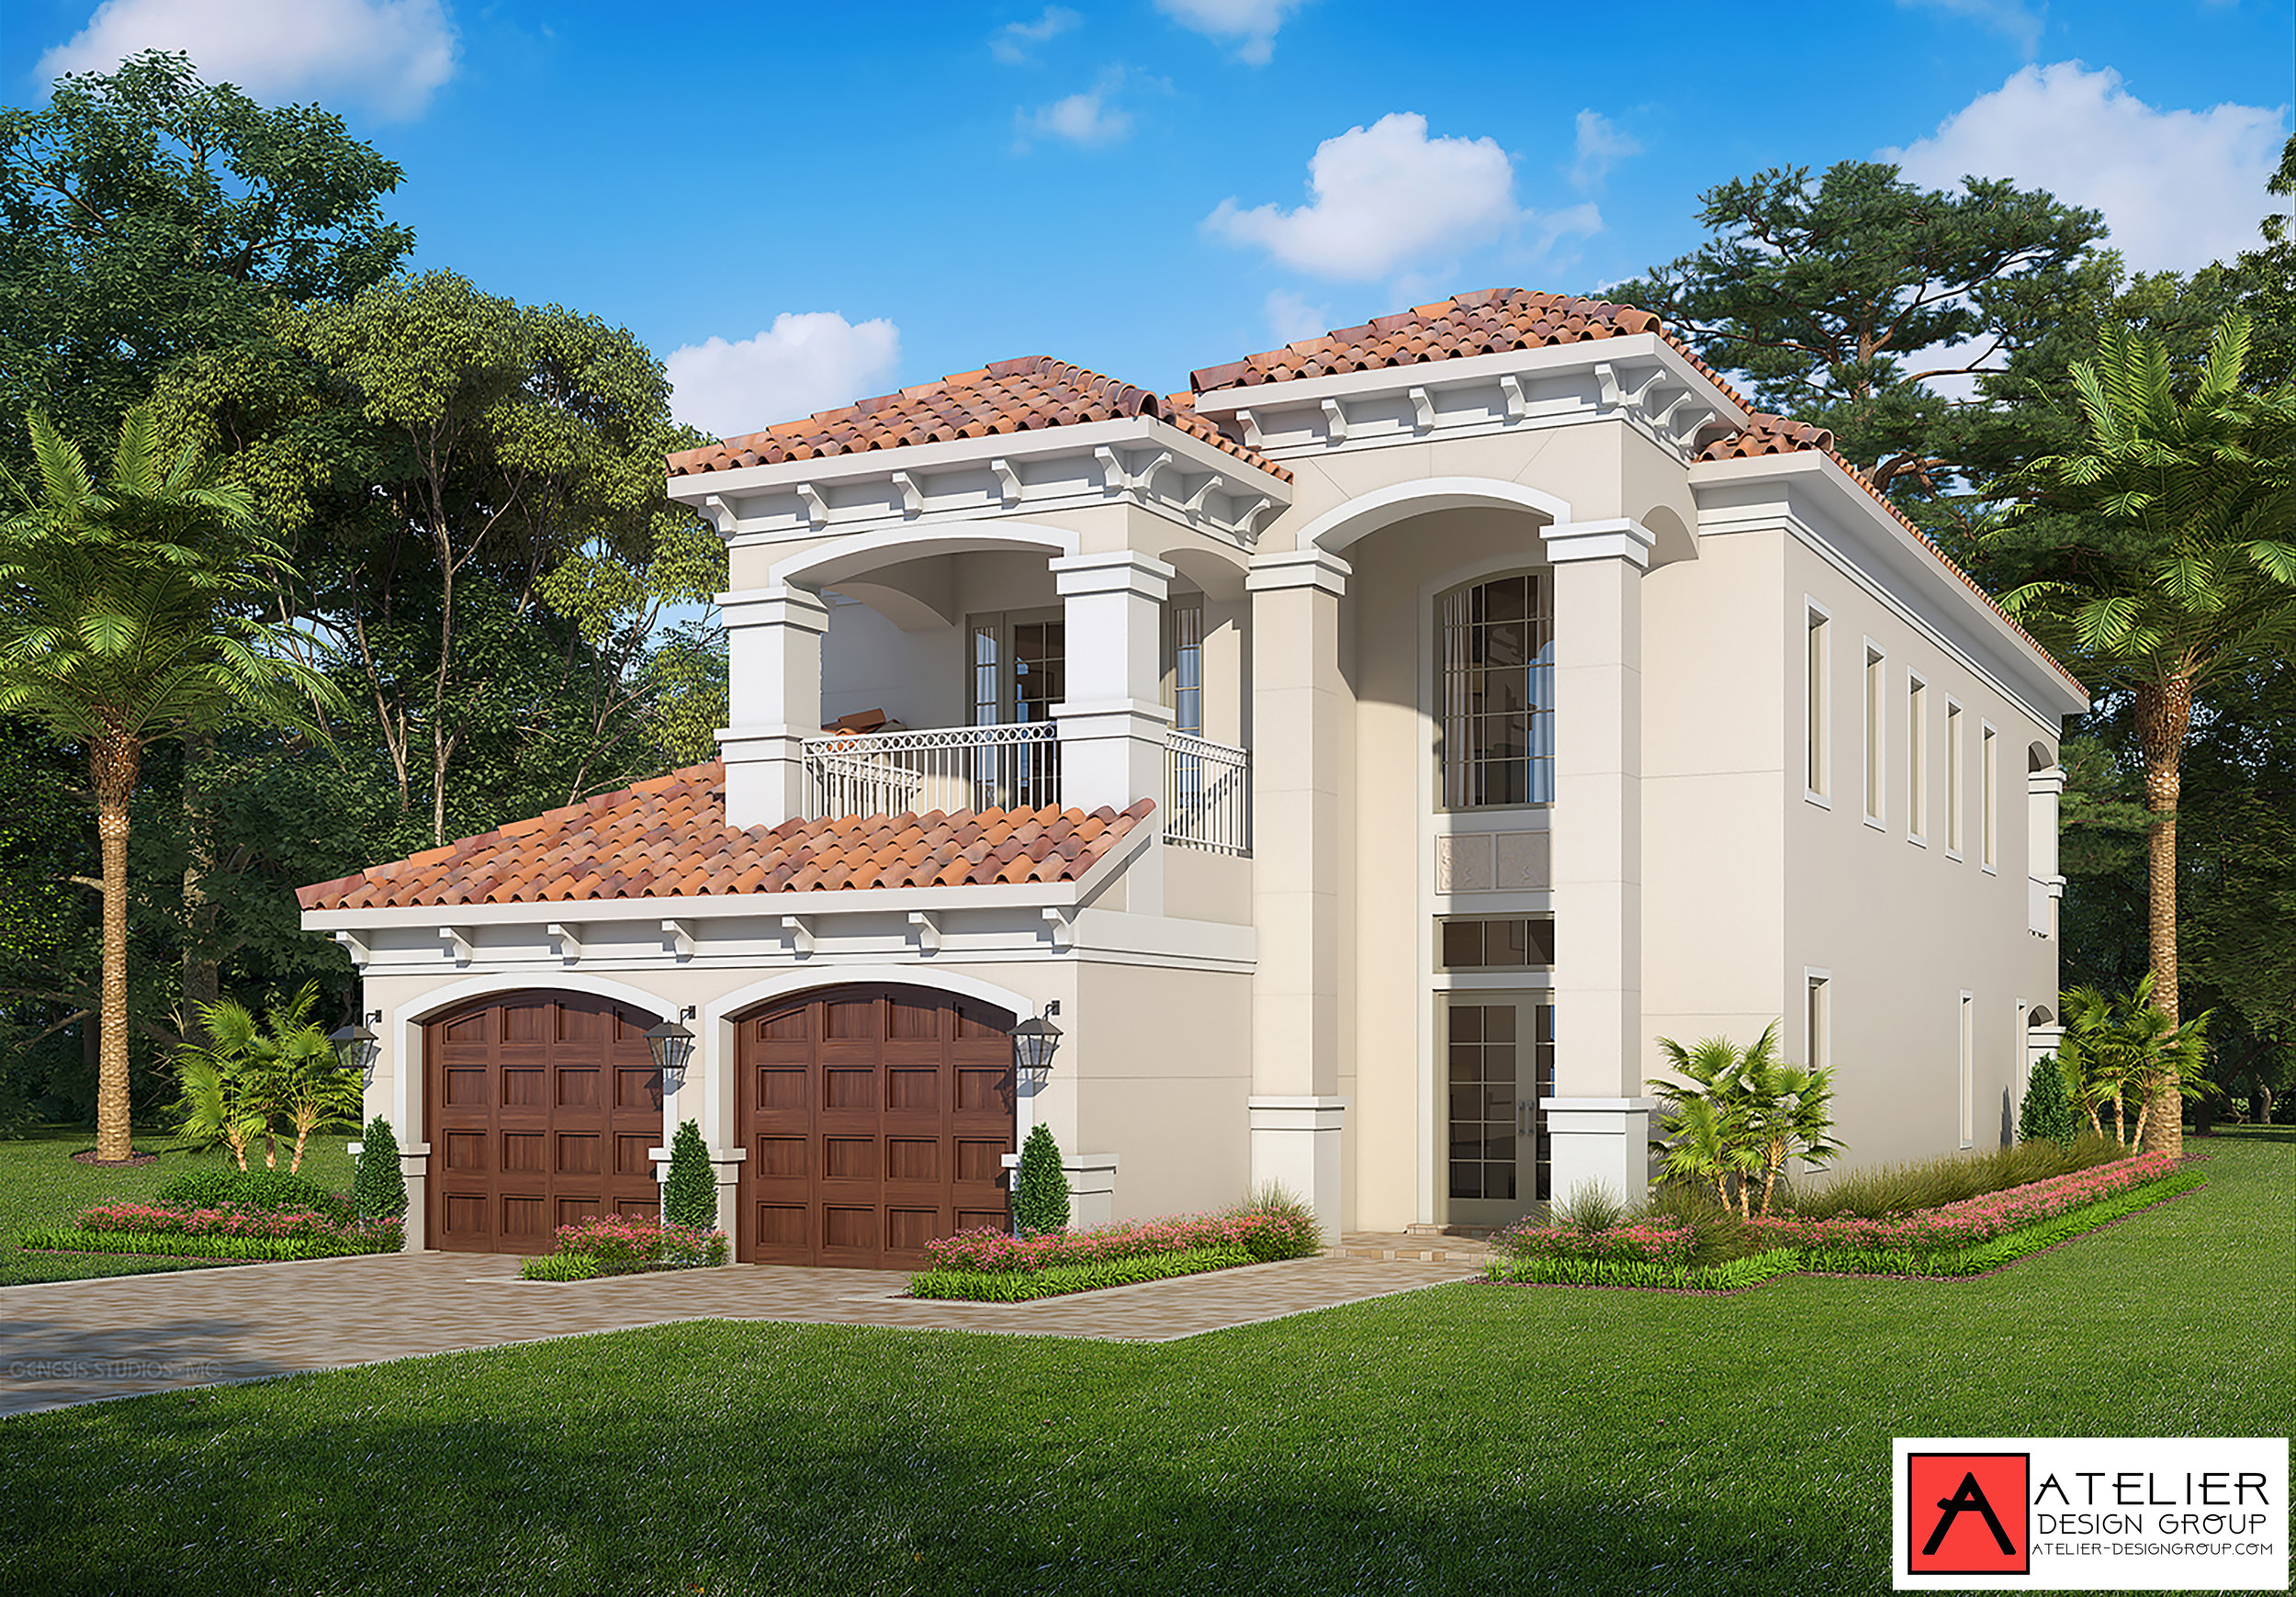 Atelier Design Group is working on a new and exciting project. Marina del Palma Yacht Club is a private gated community situated along the Intracoastal Waterway in Palm Coast, Florida. The Calisto Model.